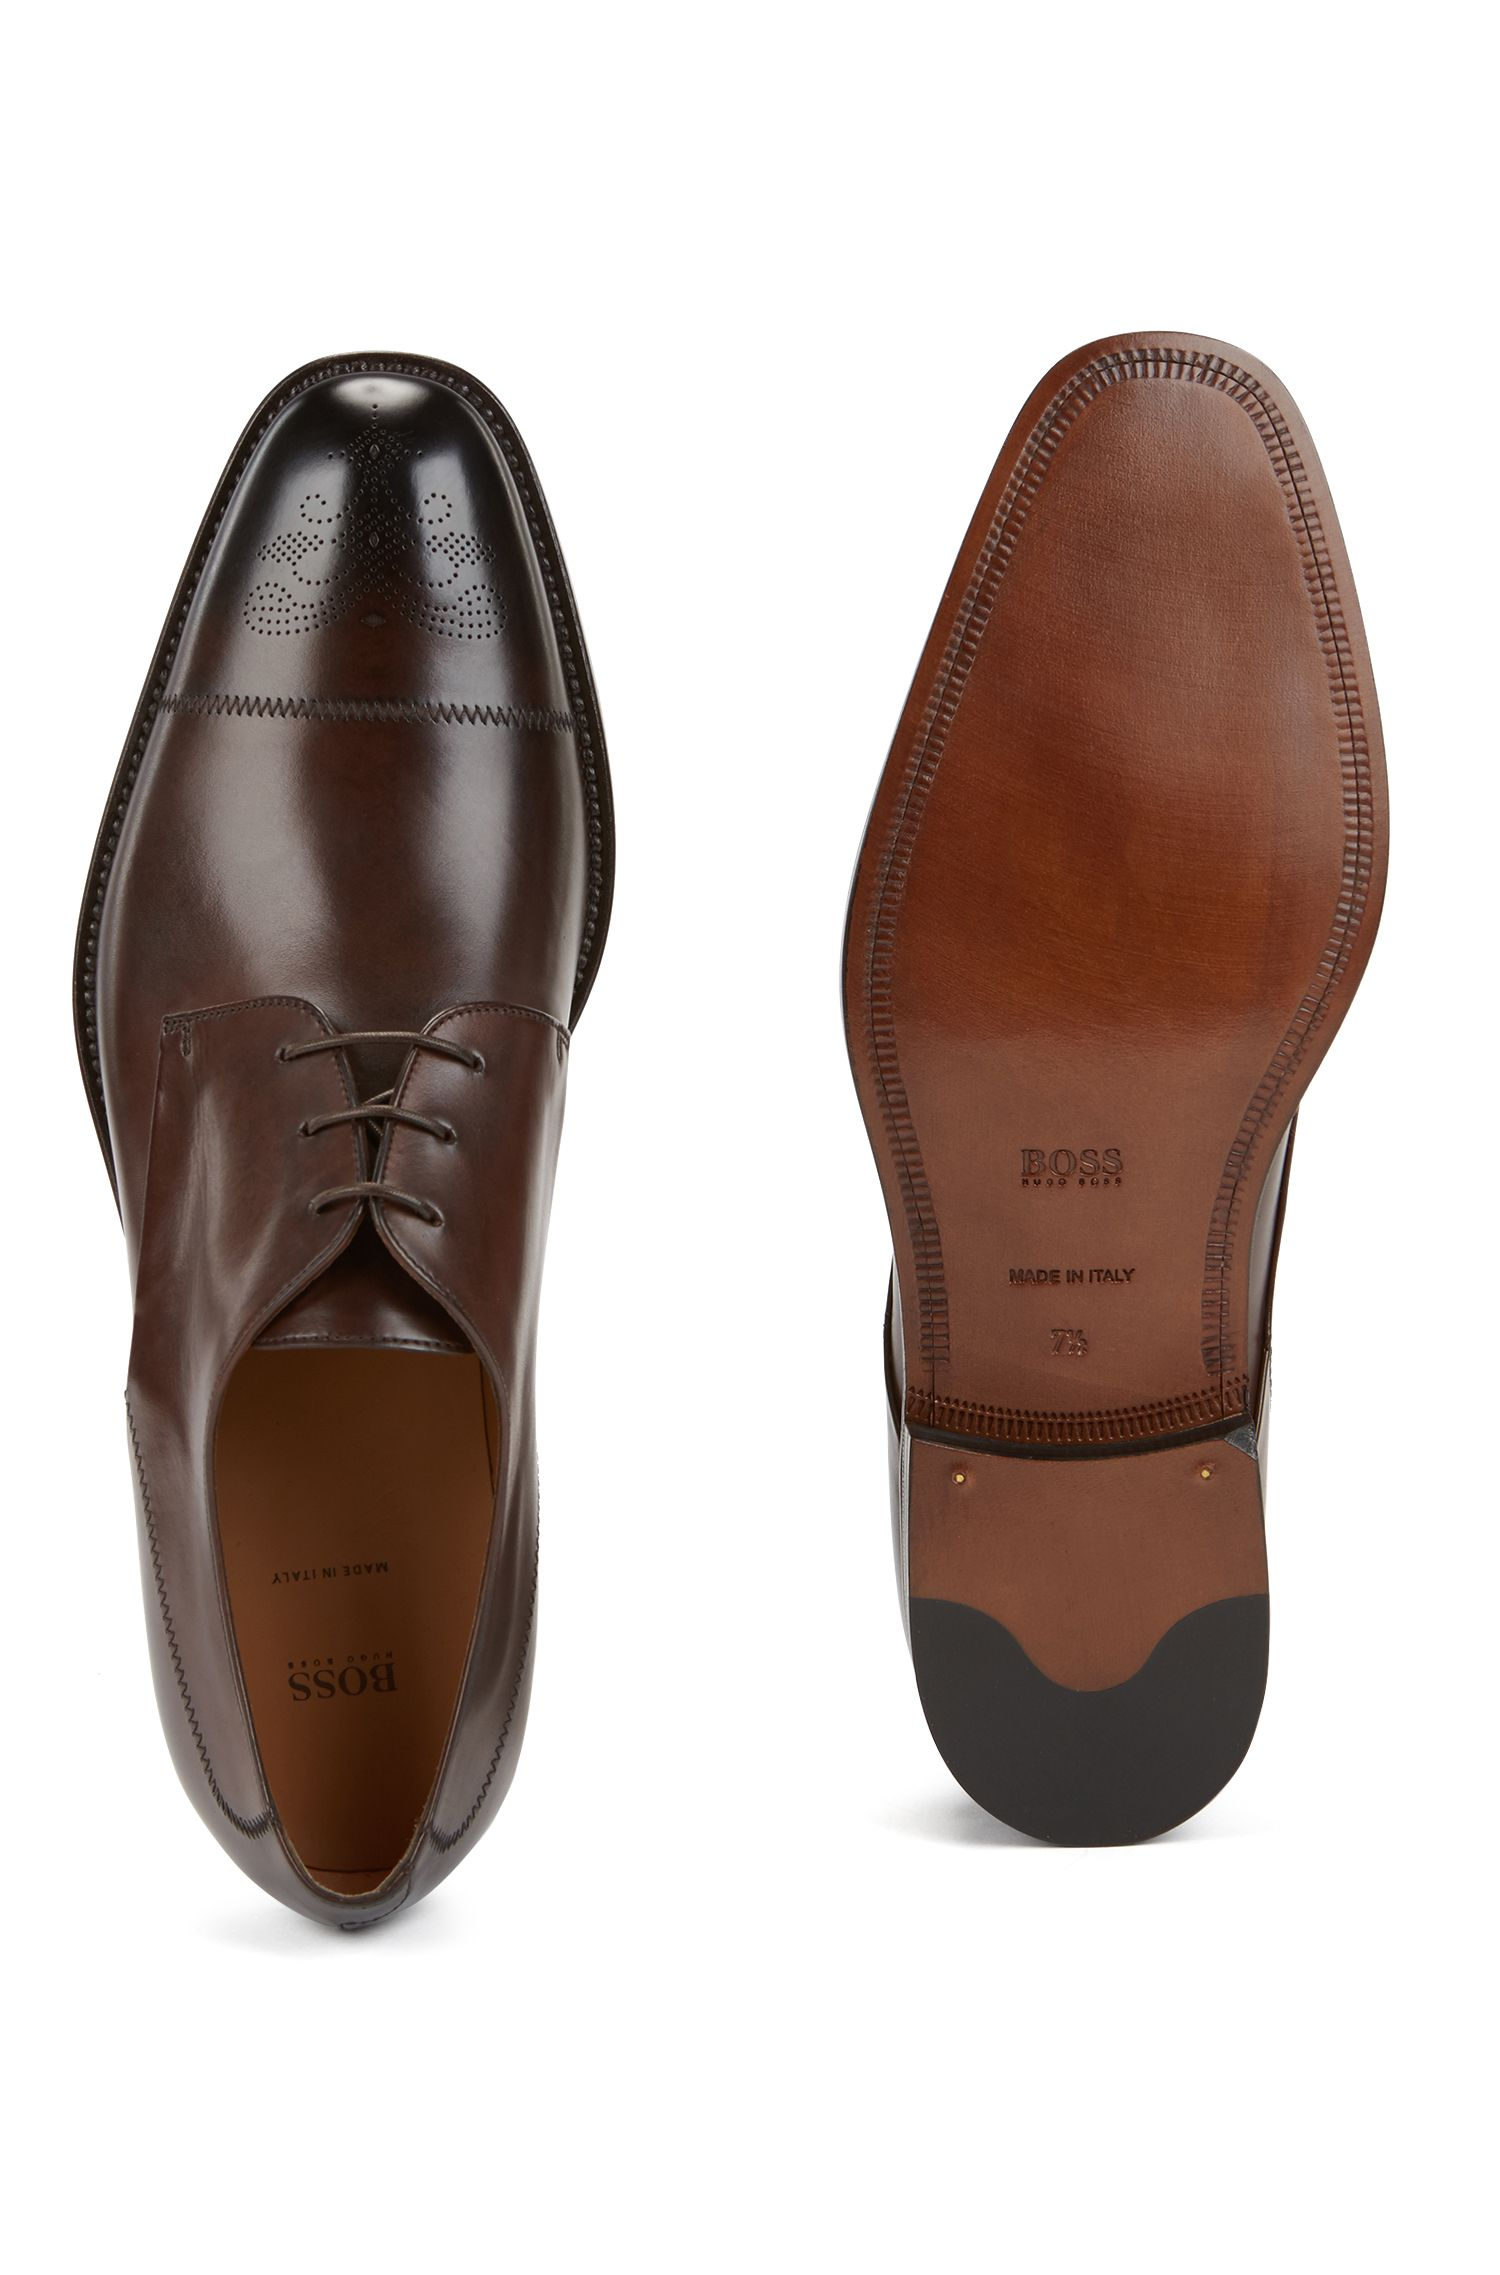 Italian-made Derby shoes in burnished calf leather